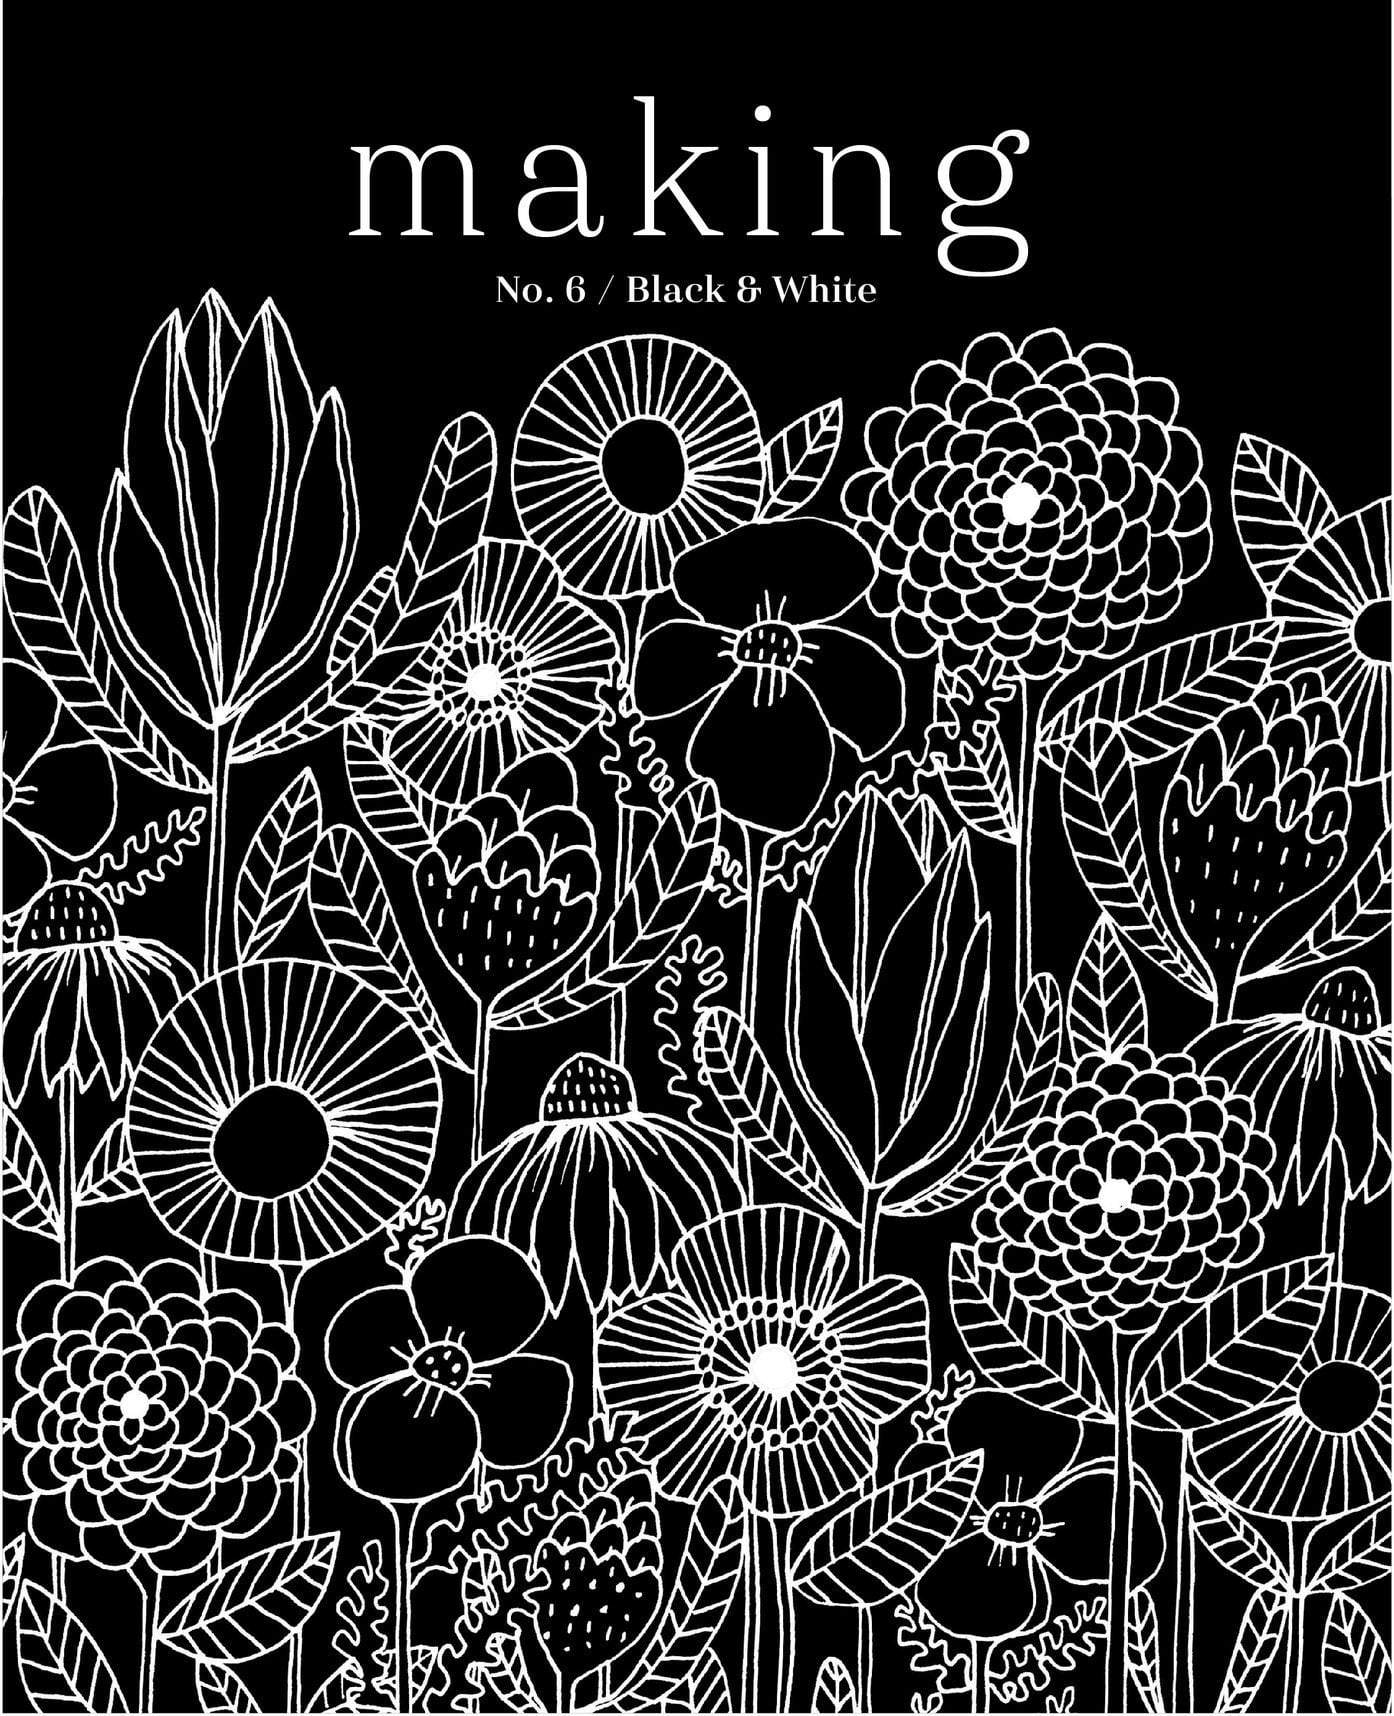 Making Magazine - No. 6 Black & White Making Magazine Magazine